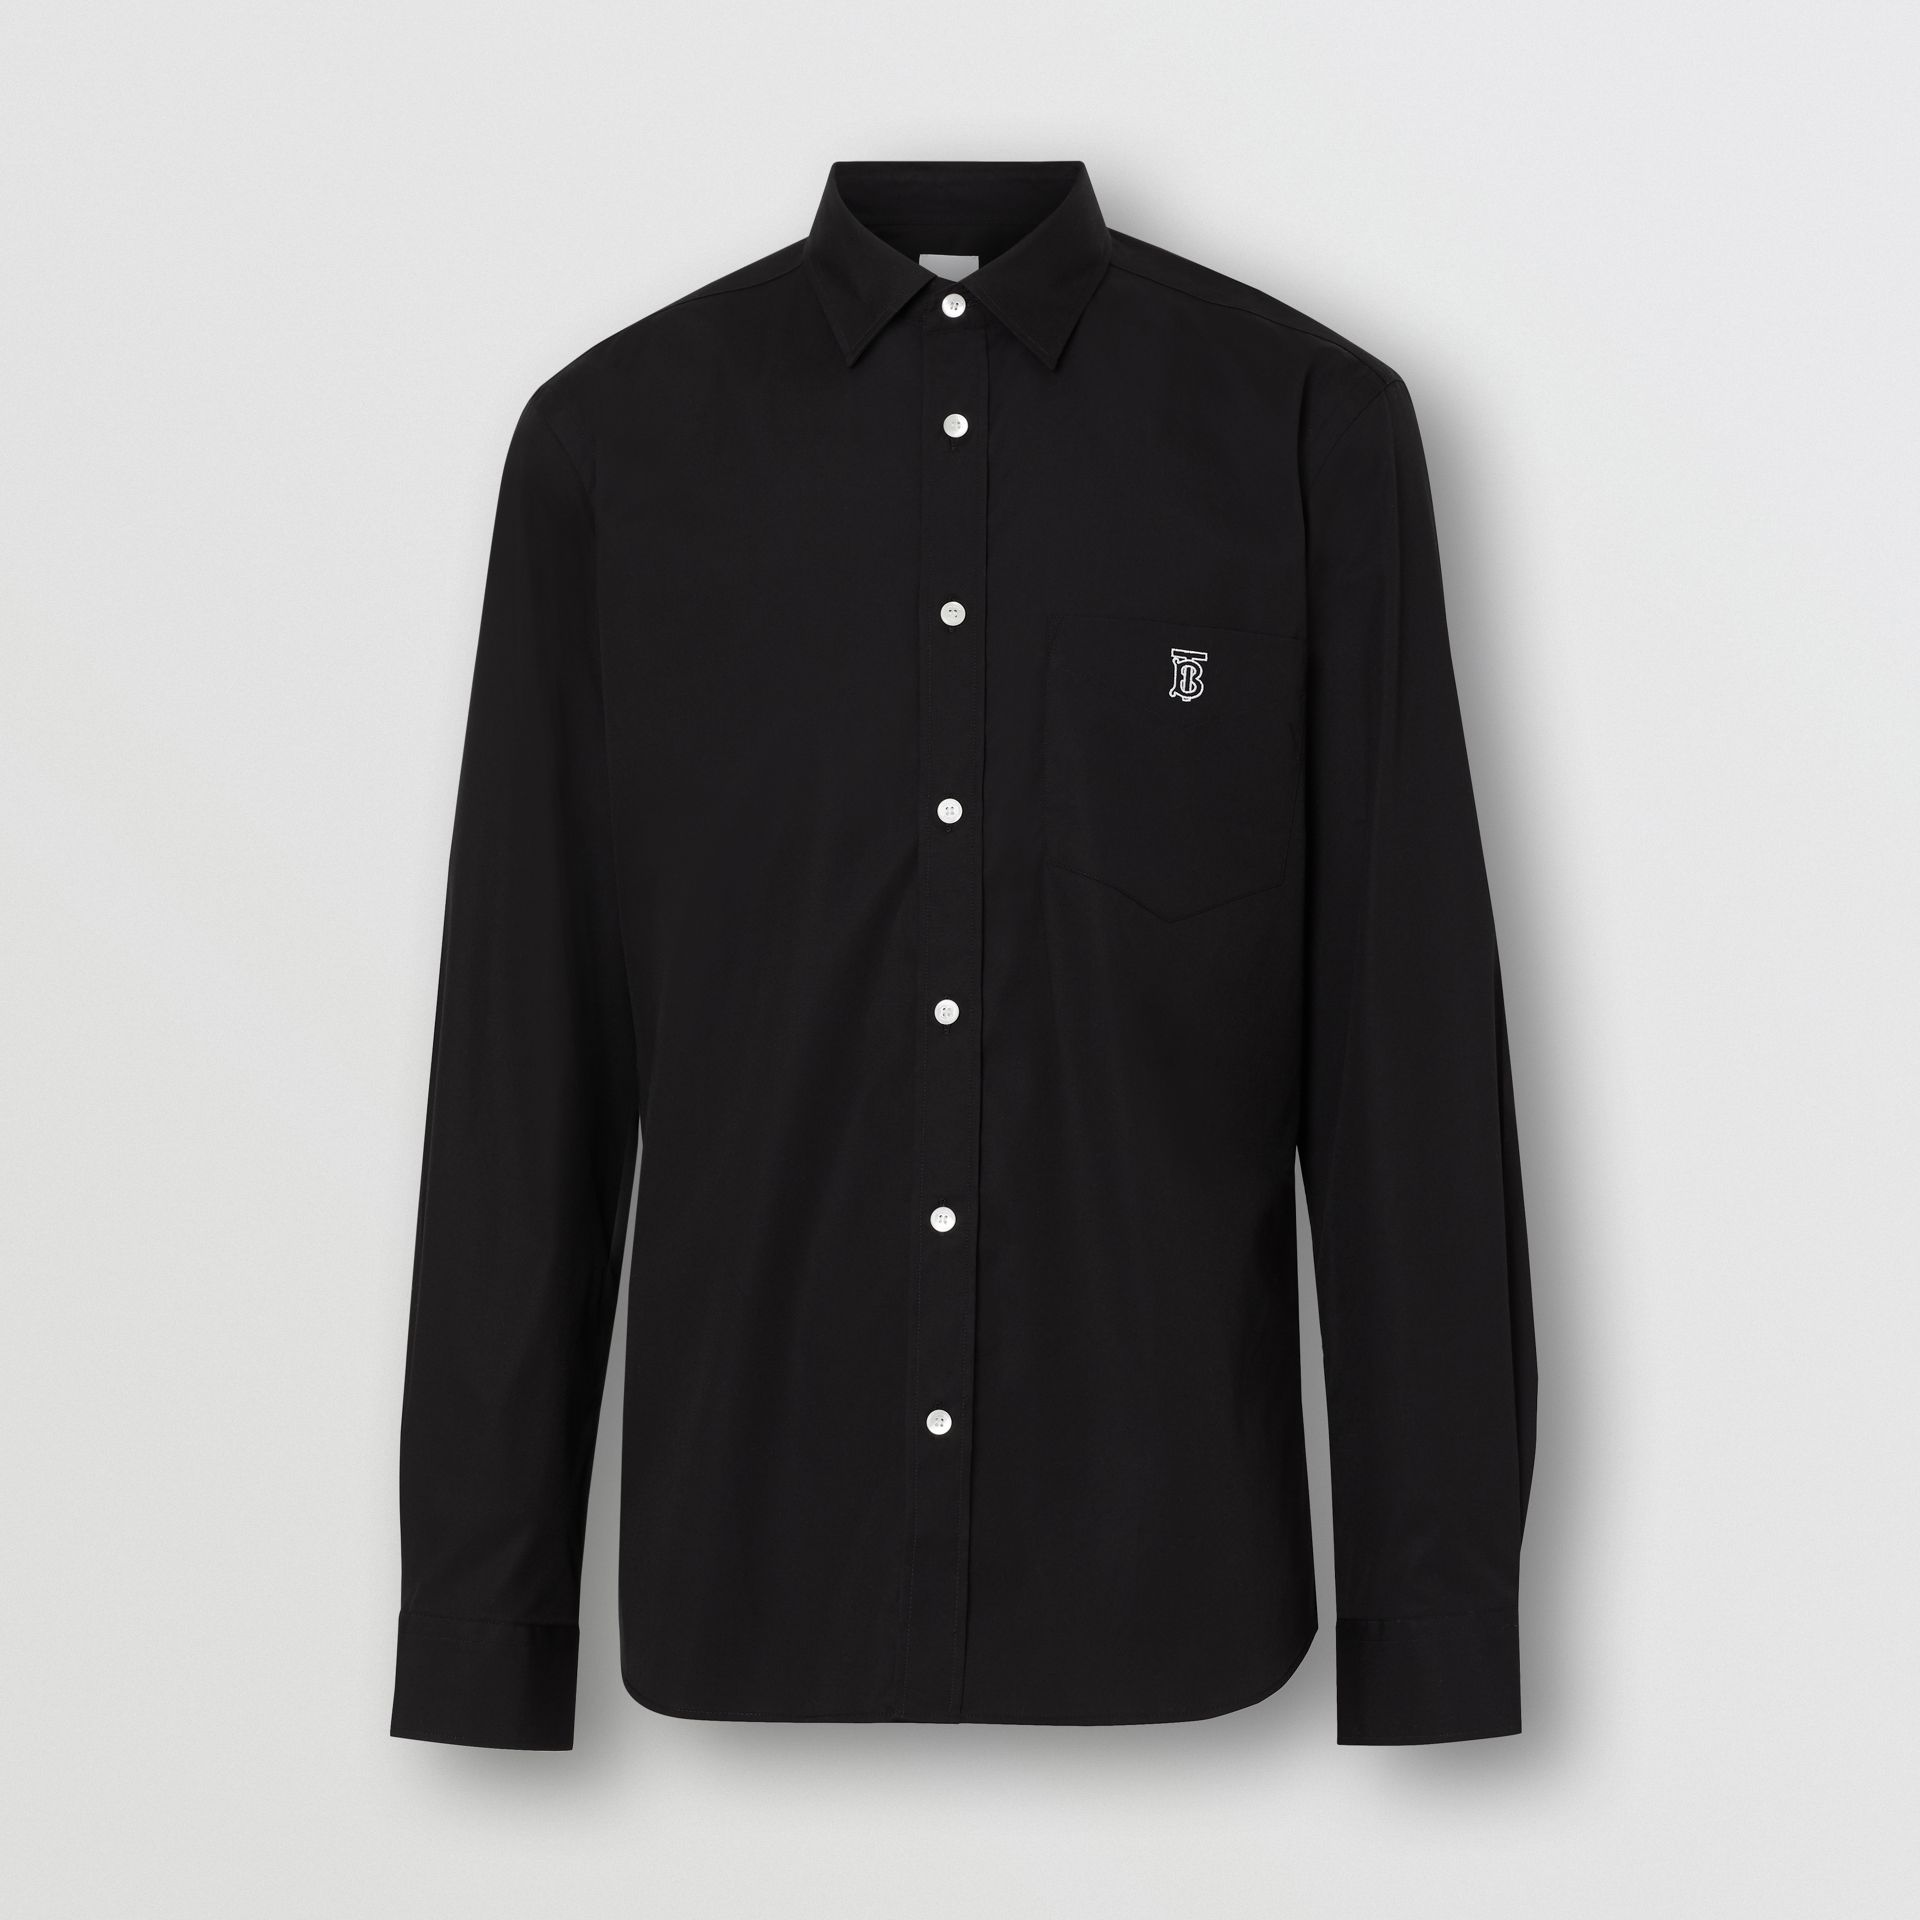 Monogram Motif Stretch Cotton Poplin Shirt in Black - Men | Burberry United Kingdom - gallery image 3